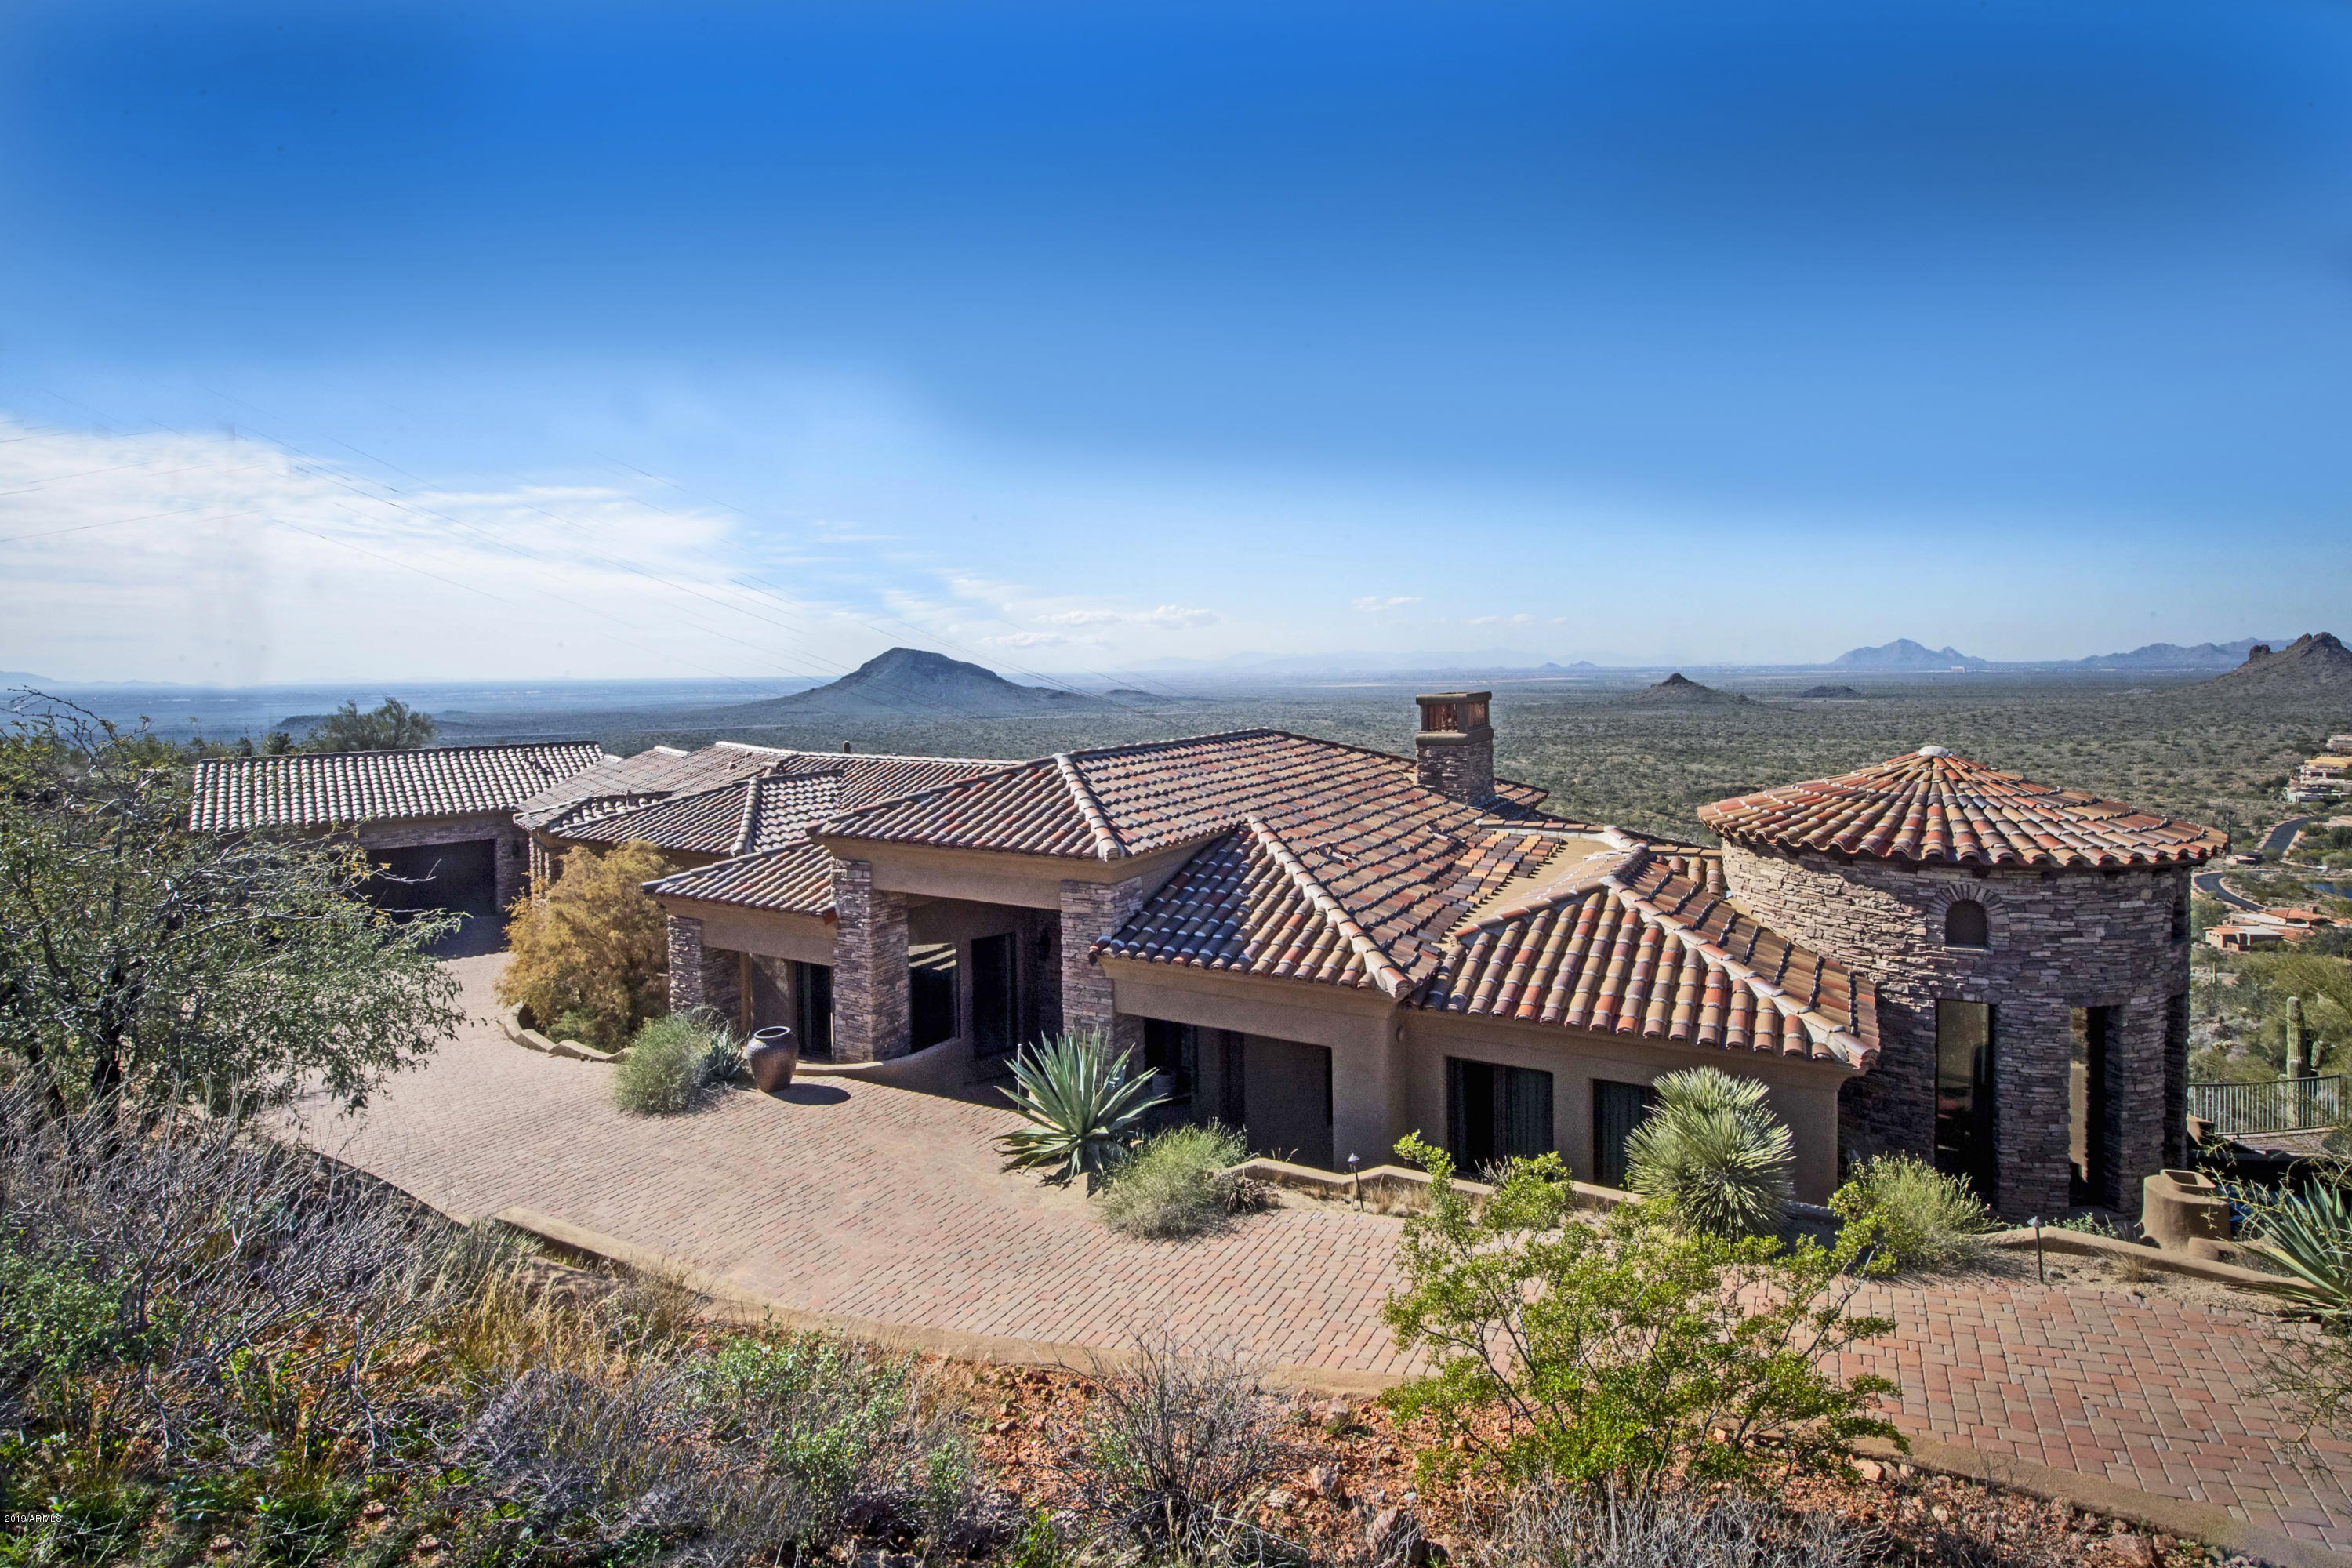 9118 N VISTA VERDE Court, Fountain Hills, AZ 85268, 5 Bedrooms Bedrooms, ,Residential,For Sale,9118 N VISTA VERDE Court,5873462